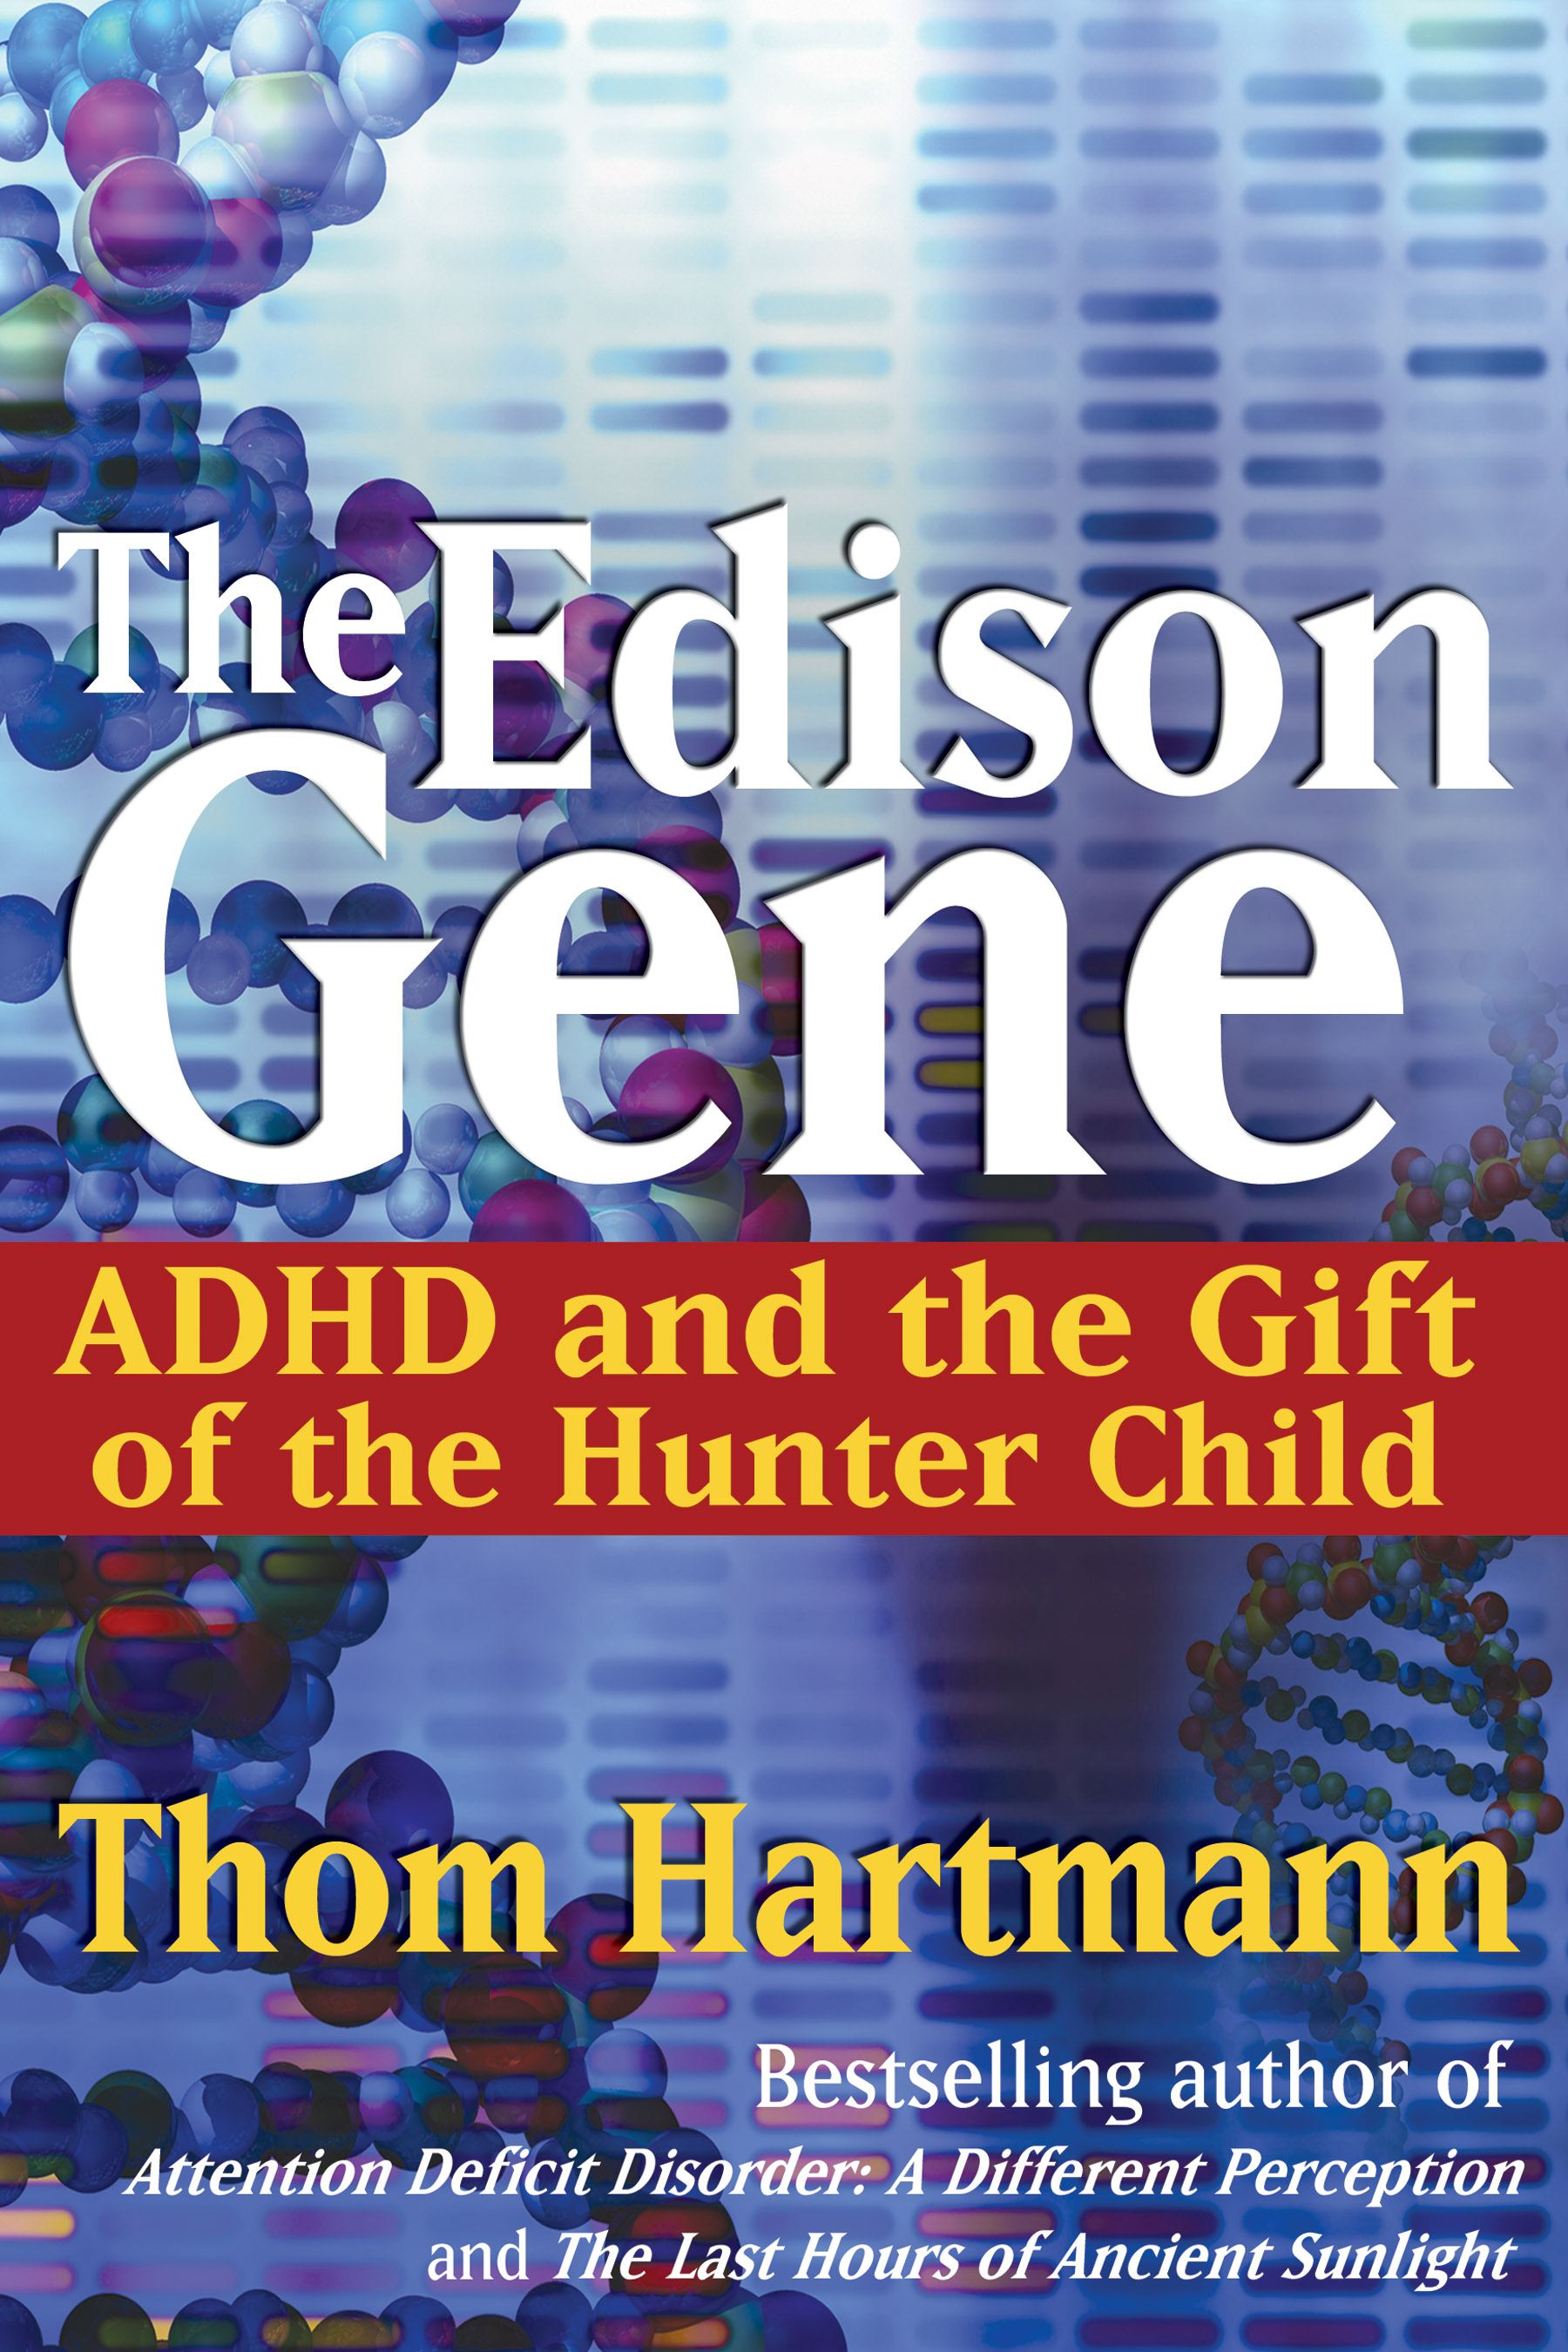 The-edison-gene-9781594770494_hr